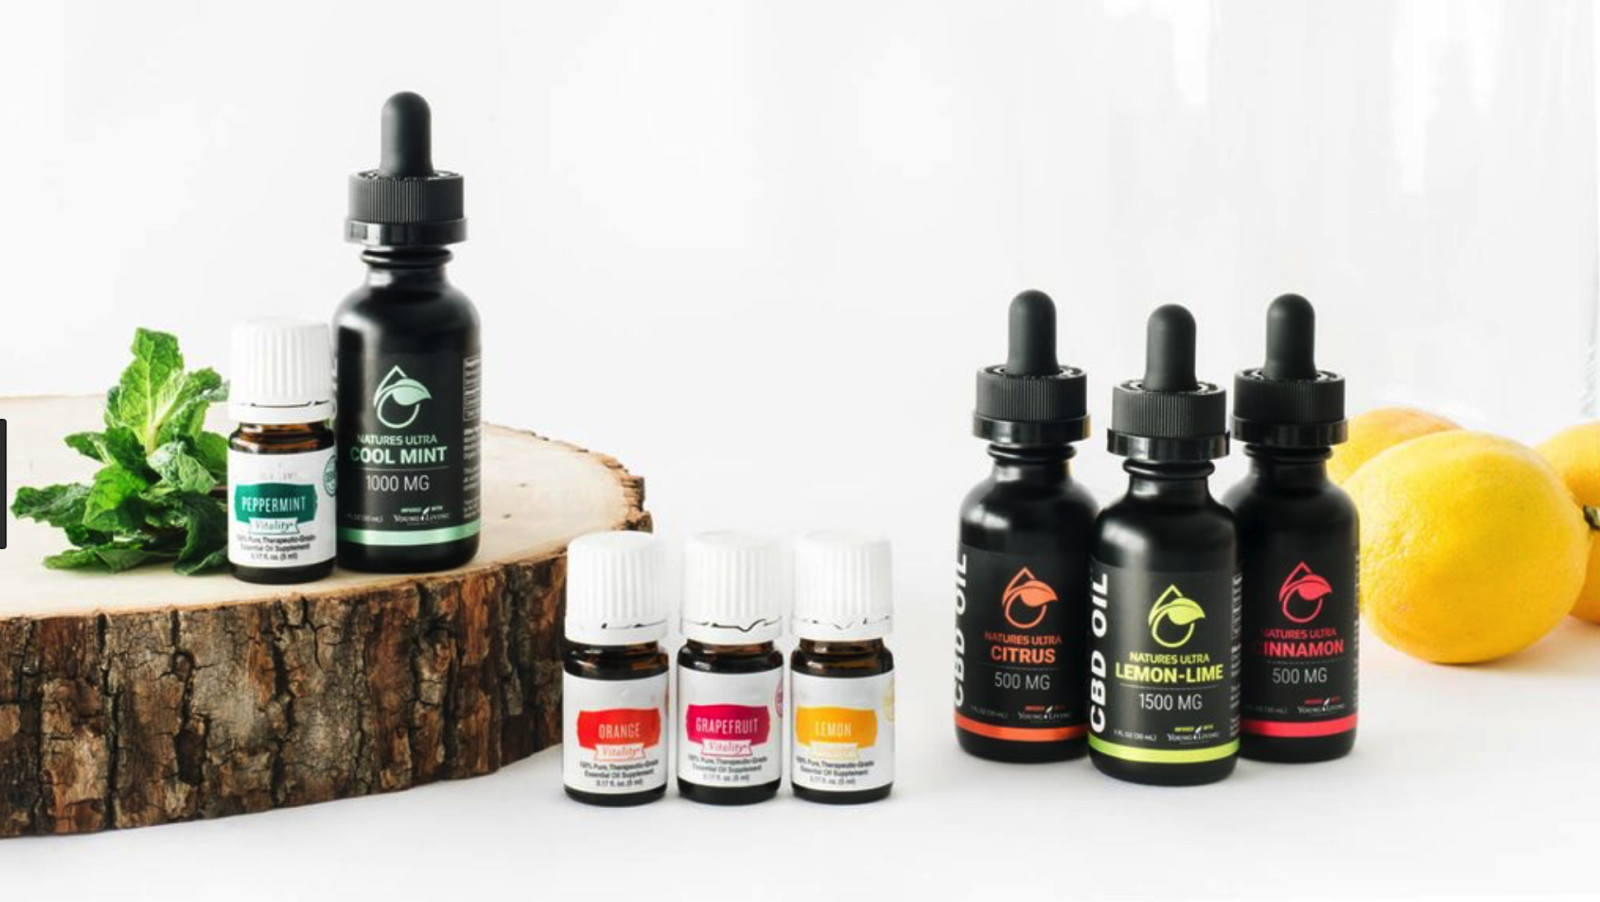 CBD Oil - Can it help you and how to avoid unsafe forms